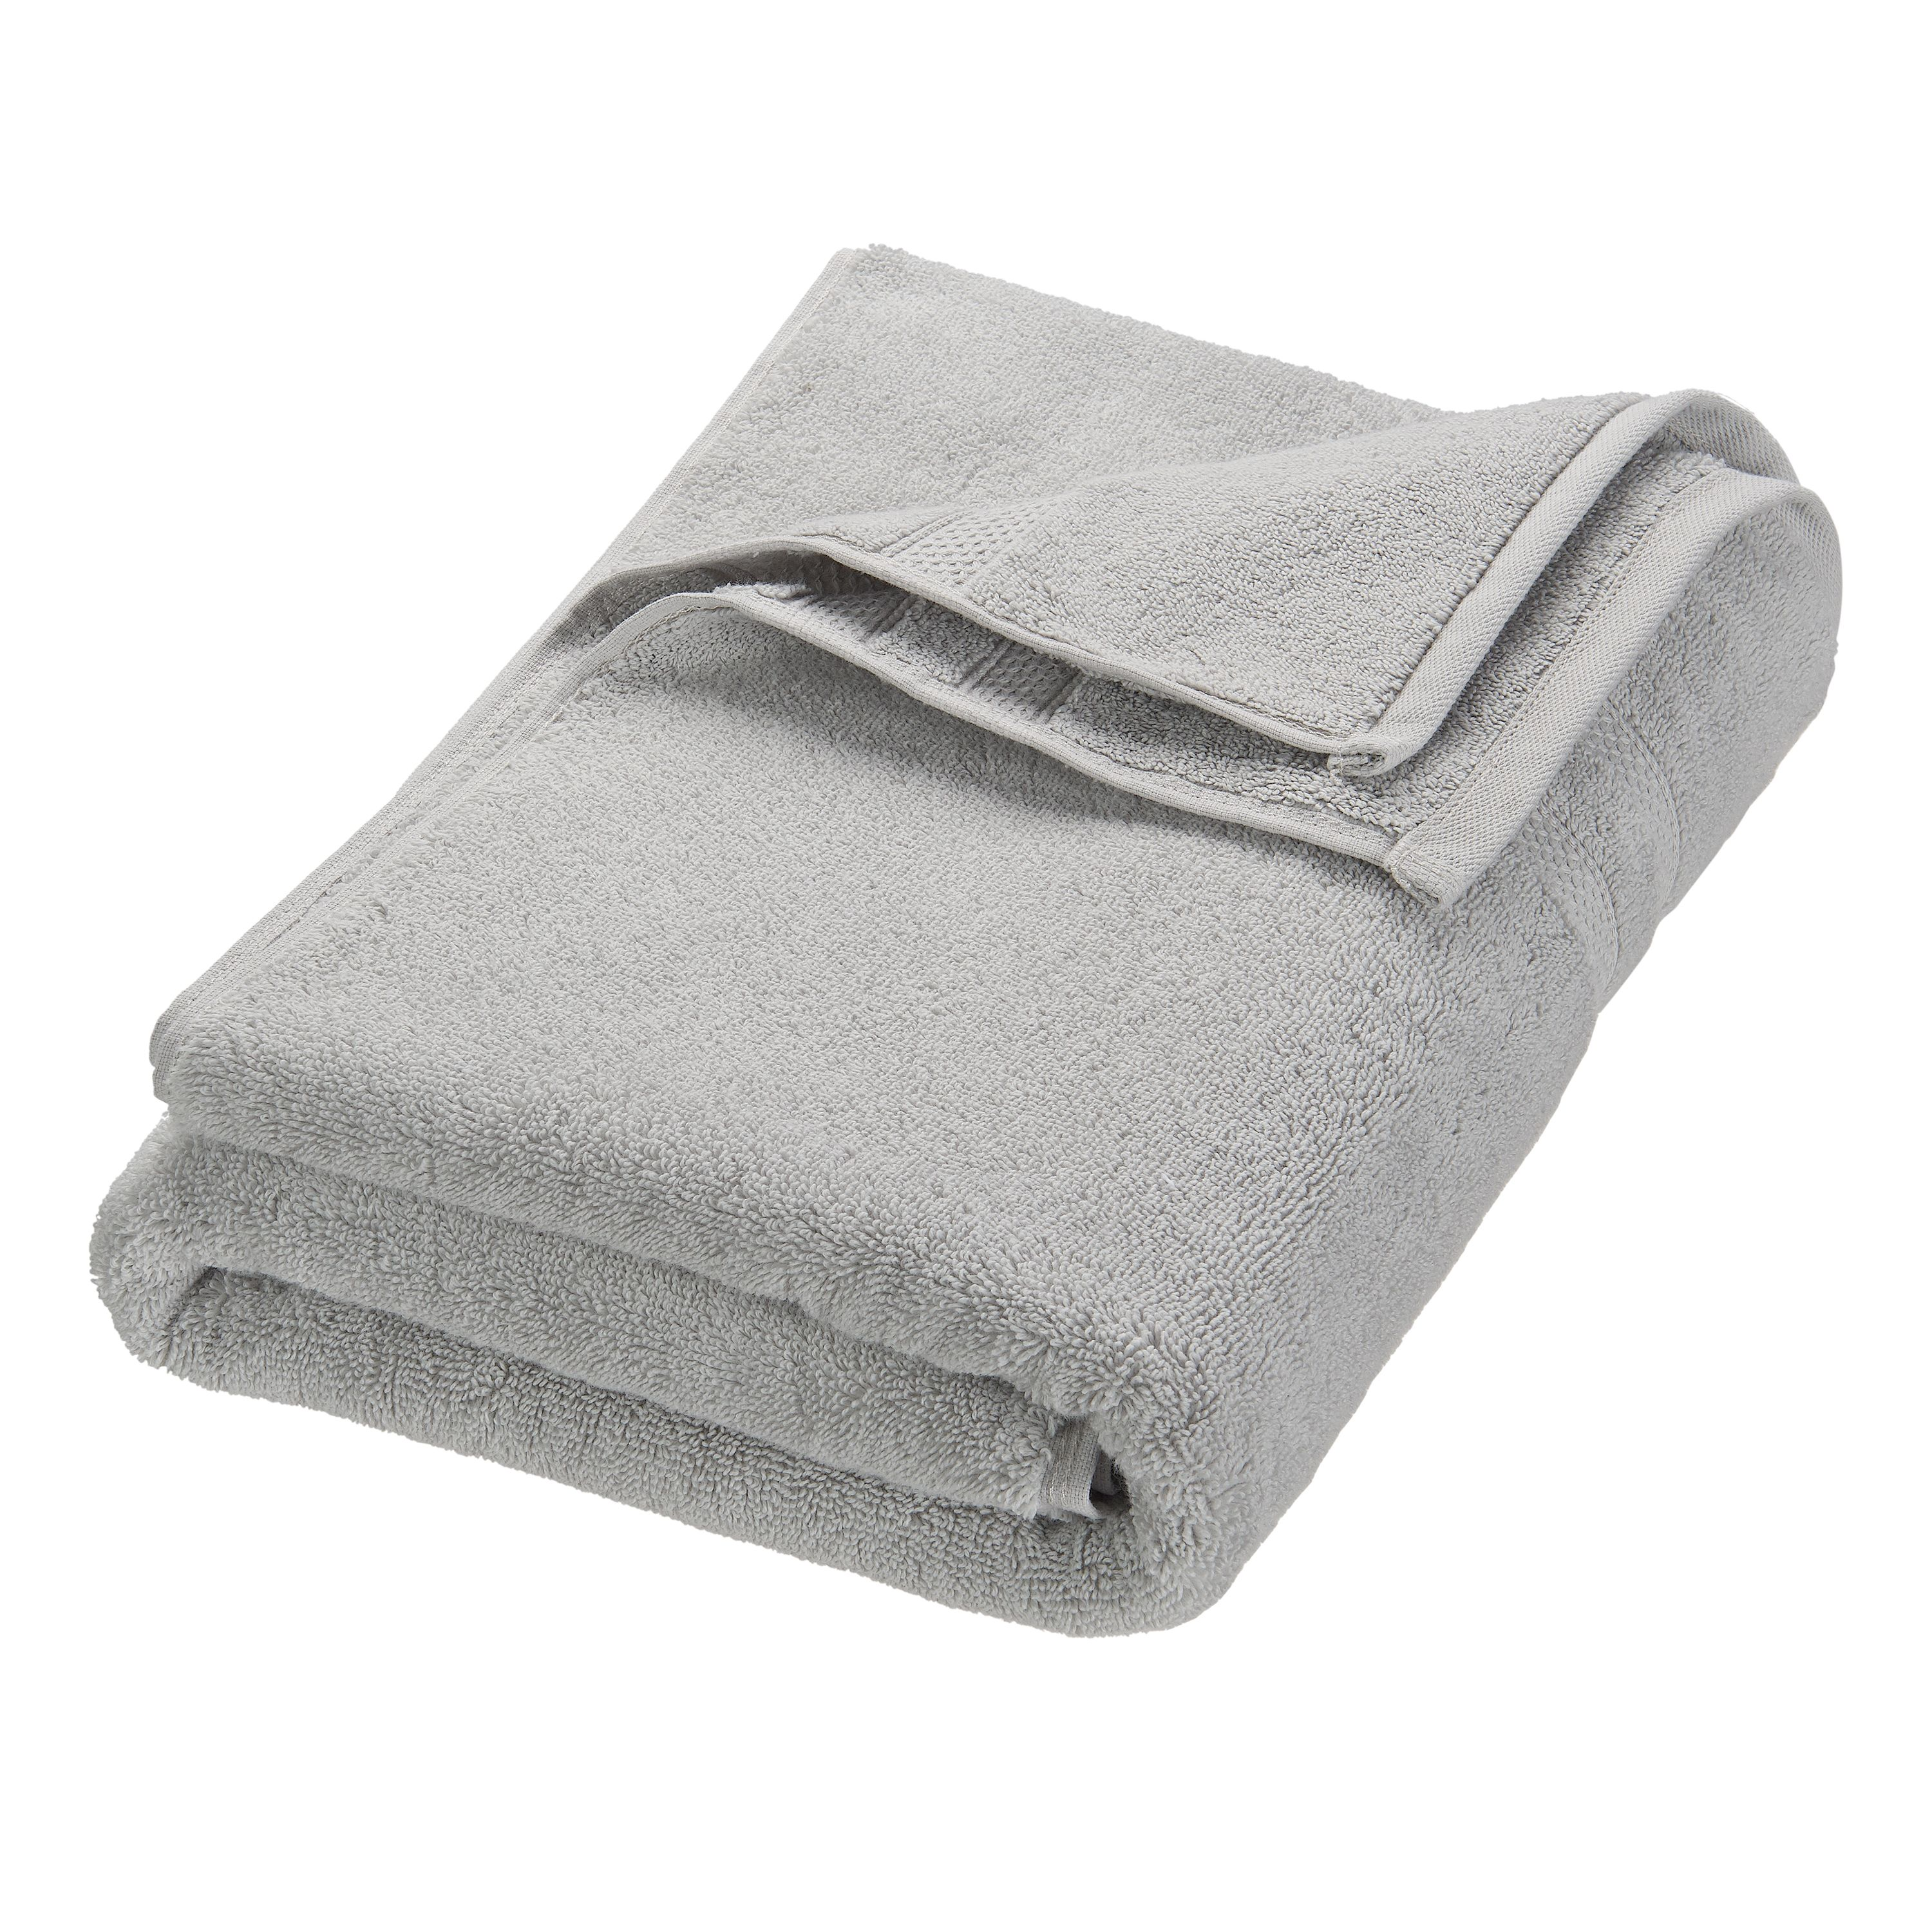 [Pick Up Today] Hotel Style Premium Turkish Cotton Bath Towel Collection